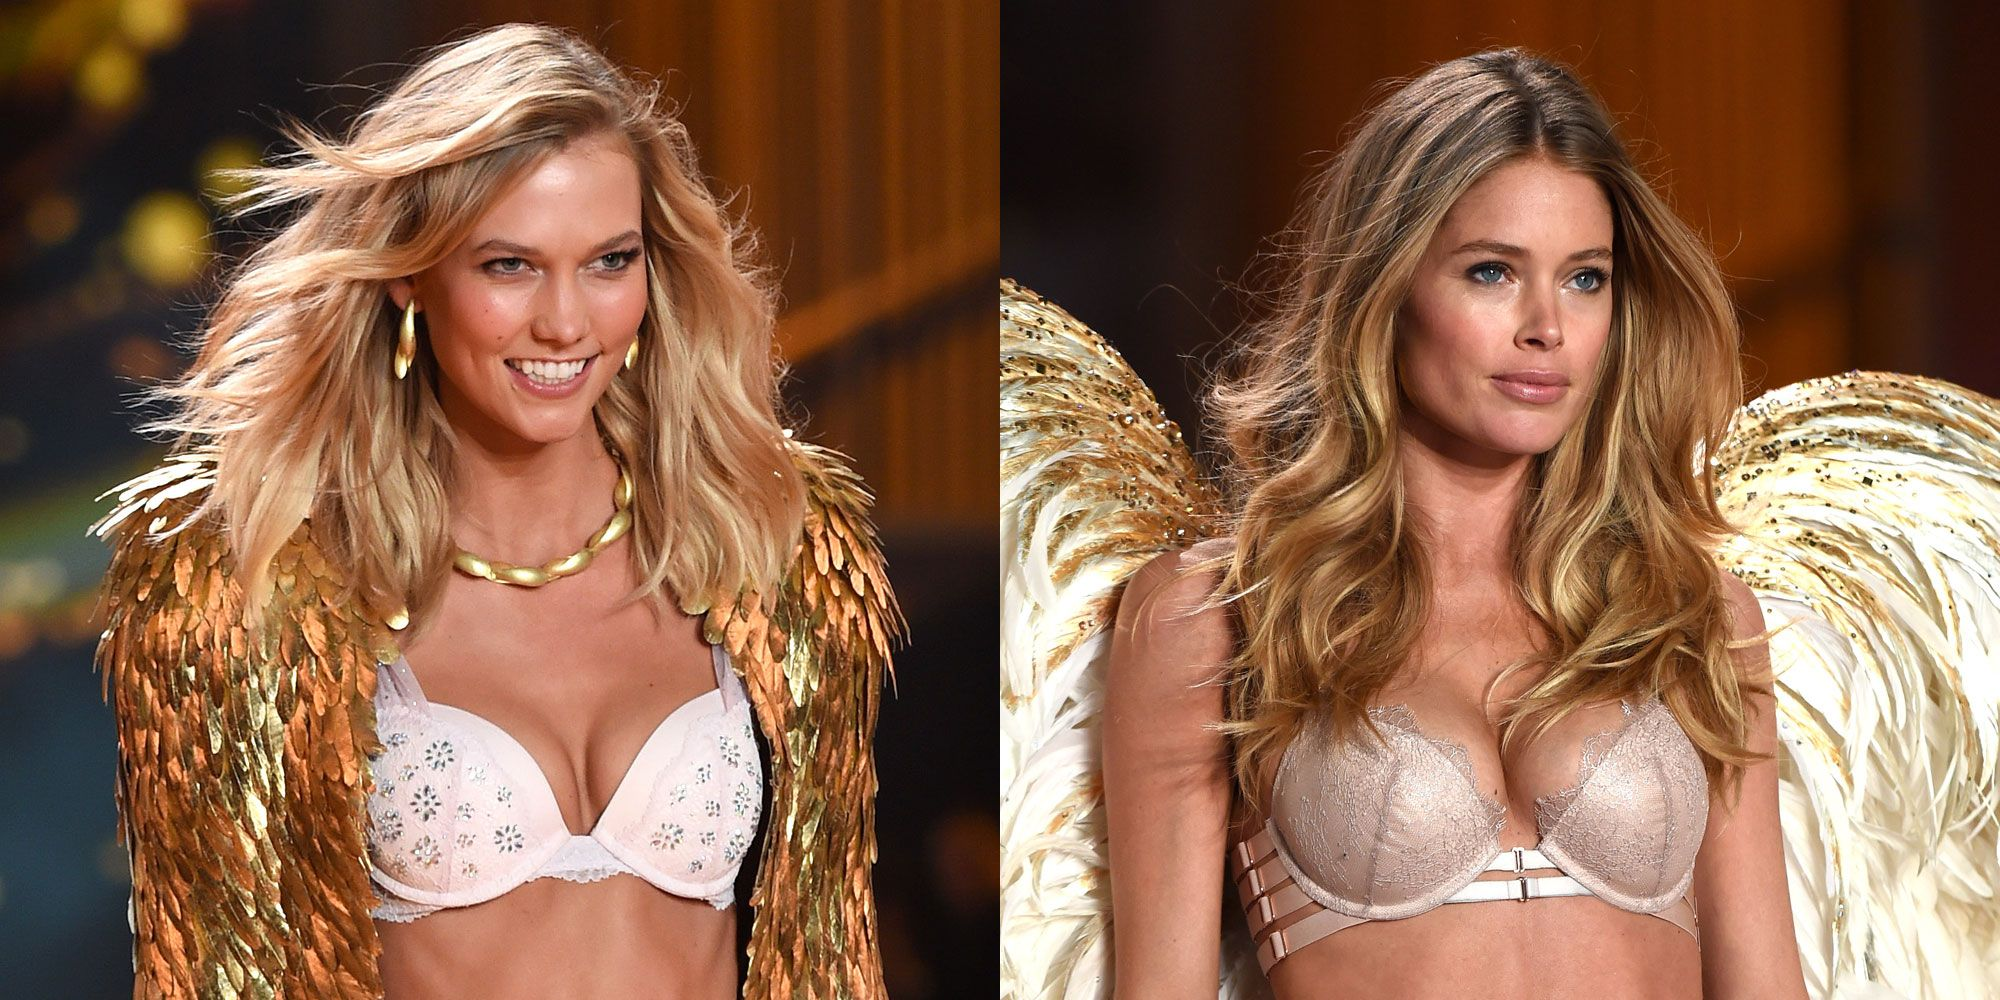 Karlie and More: The VS Angels Share Their Holiday Wish Lists Karlie and More: The VS Angels Share Their Holiday Wish Lists new picture